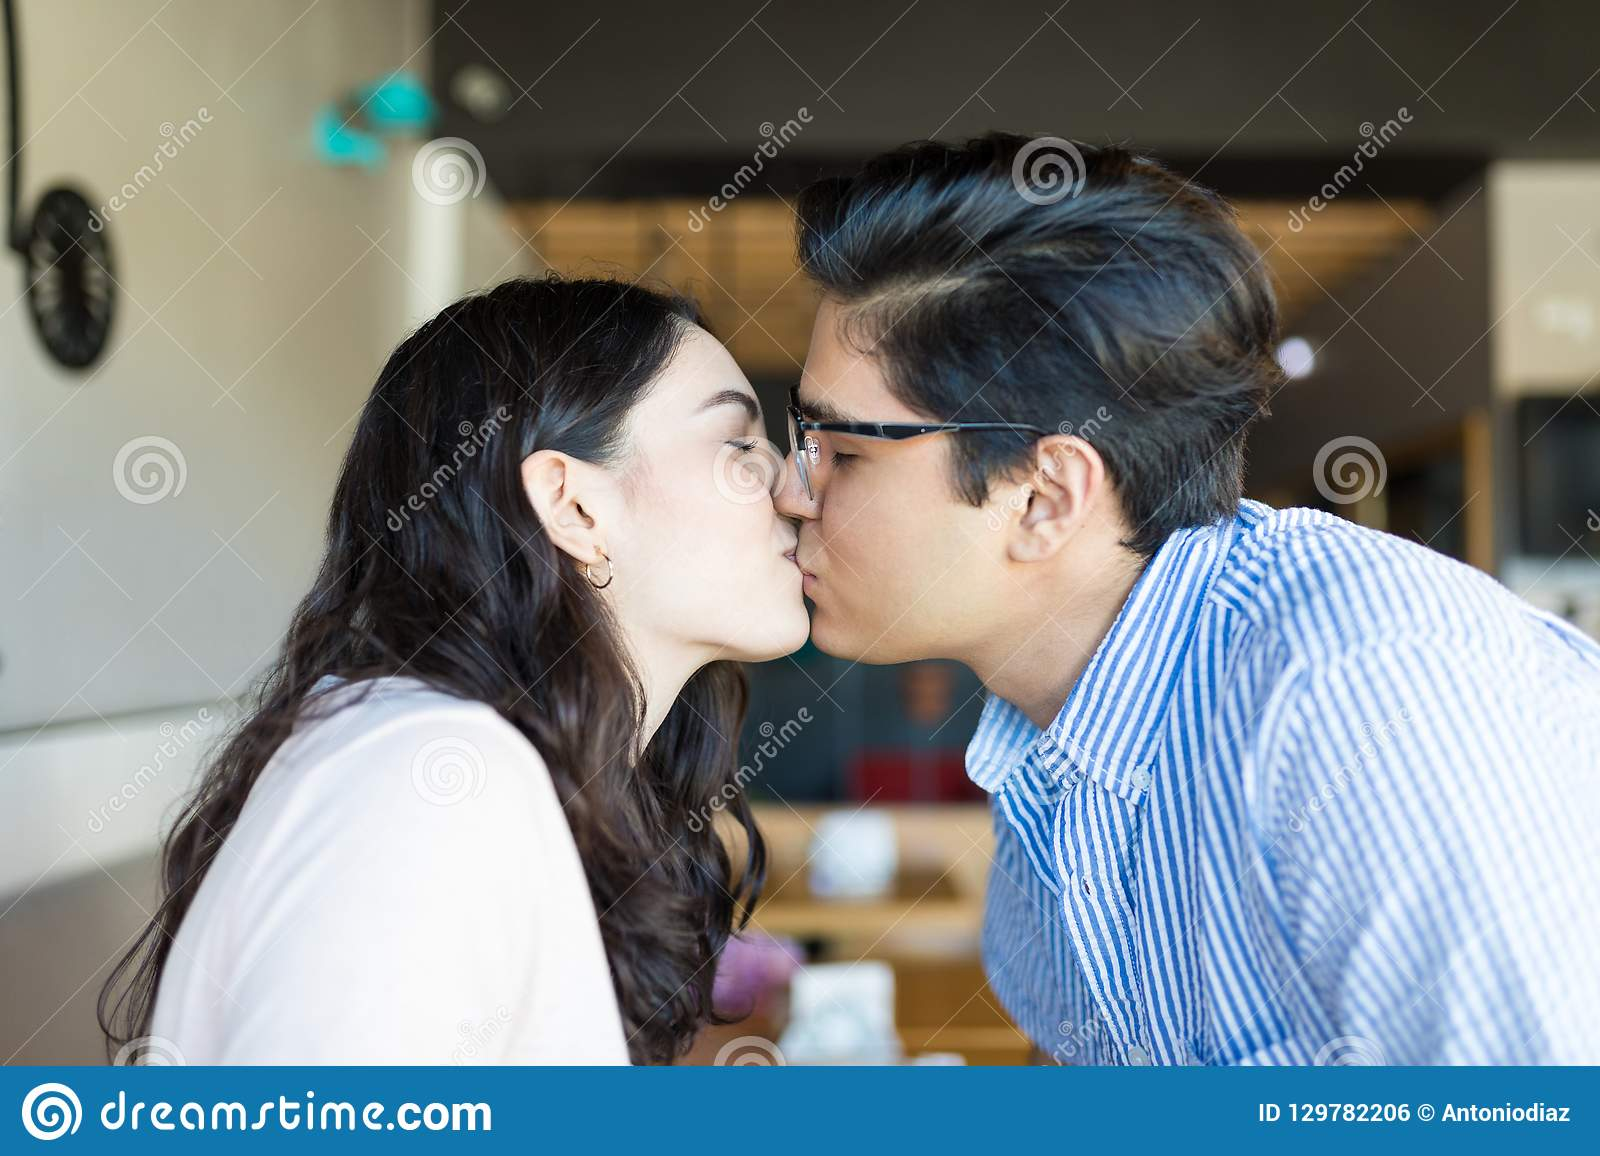 Their kiss have should When couple a first